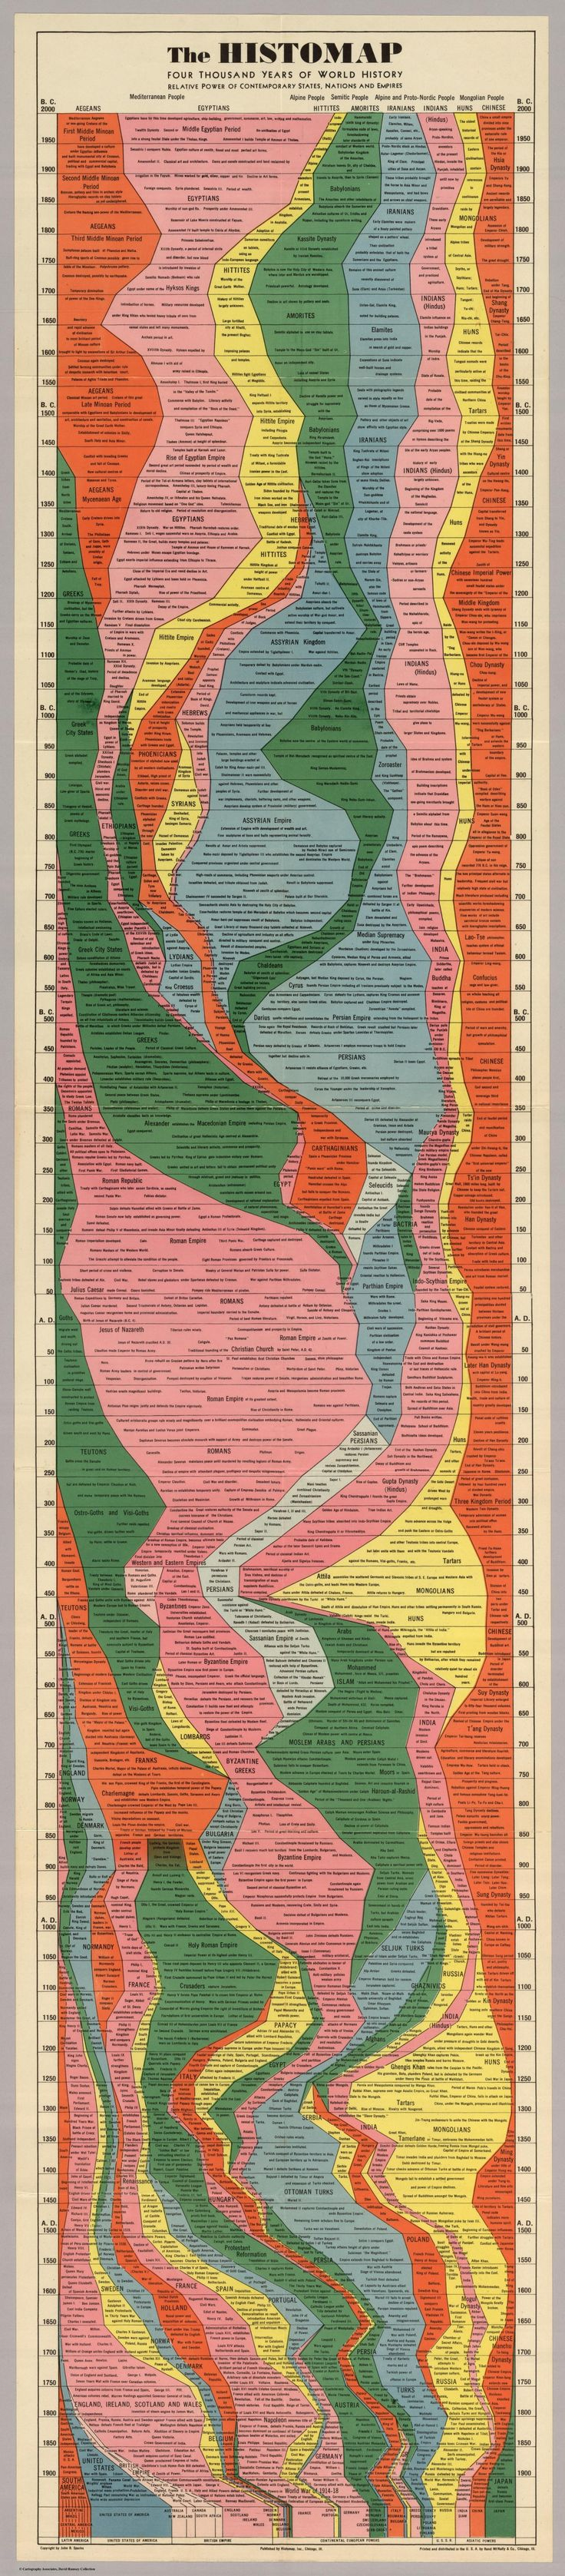 The entire history of the world, in 1 chart - The Washington Post